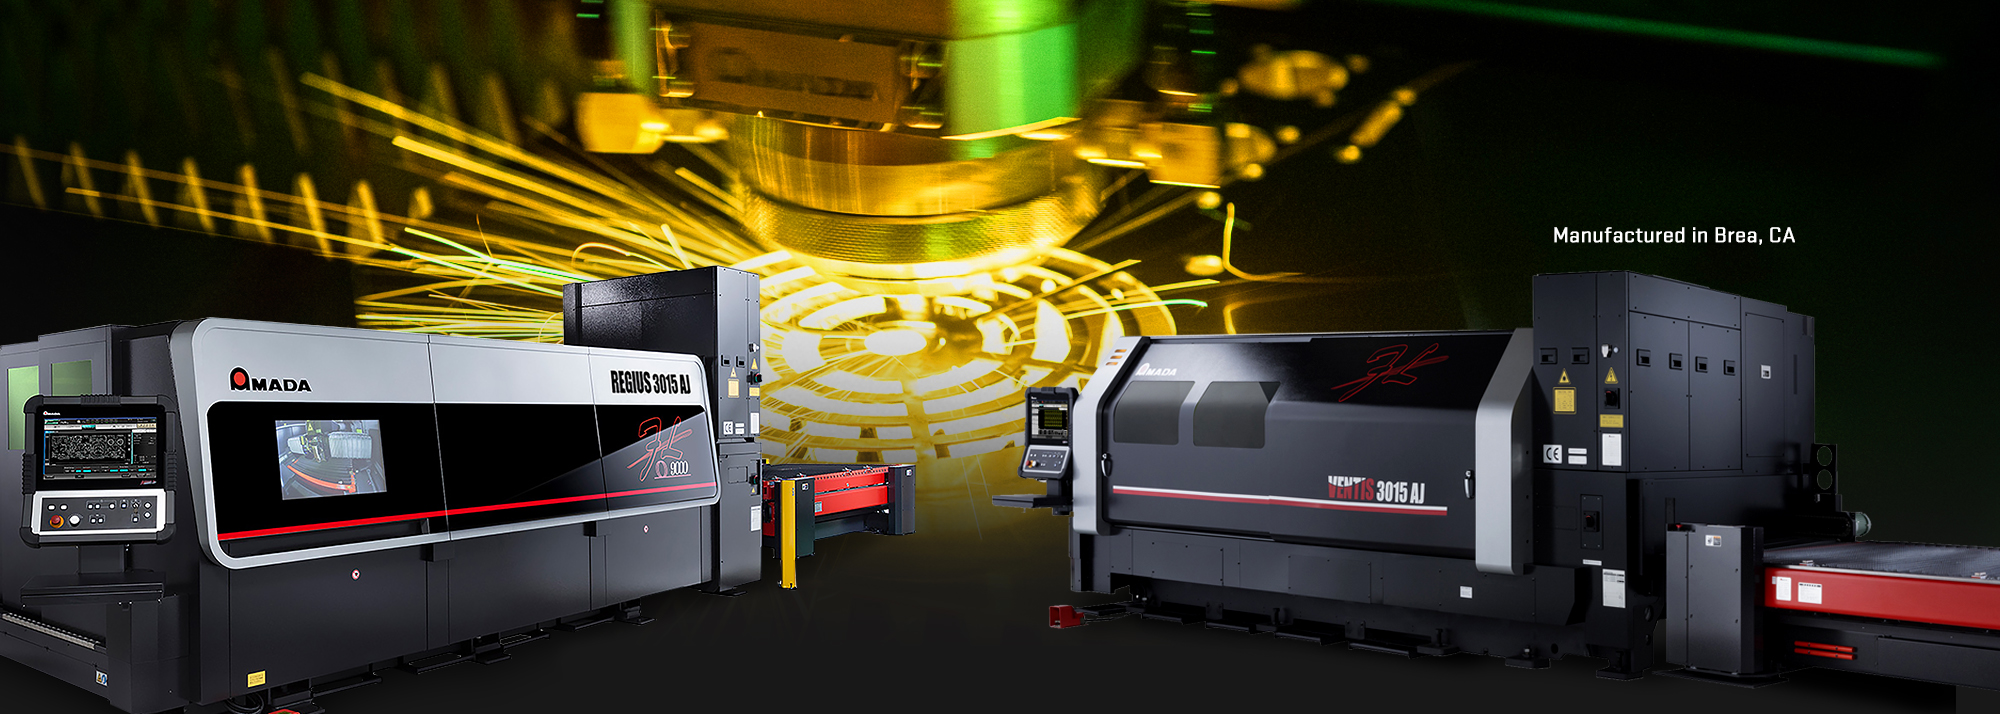 VENTIS Series - Fiber Laser Cutting System | <a href='ventis-aj'>More Info</a>